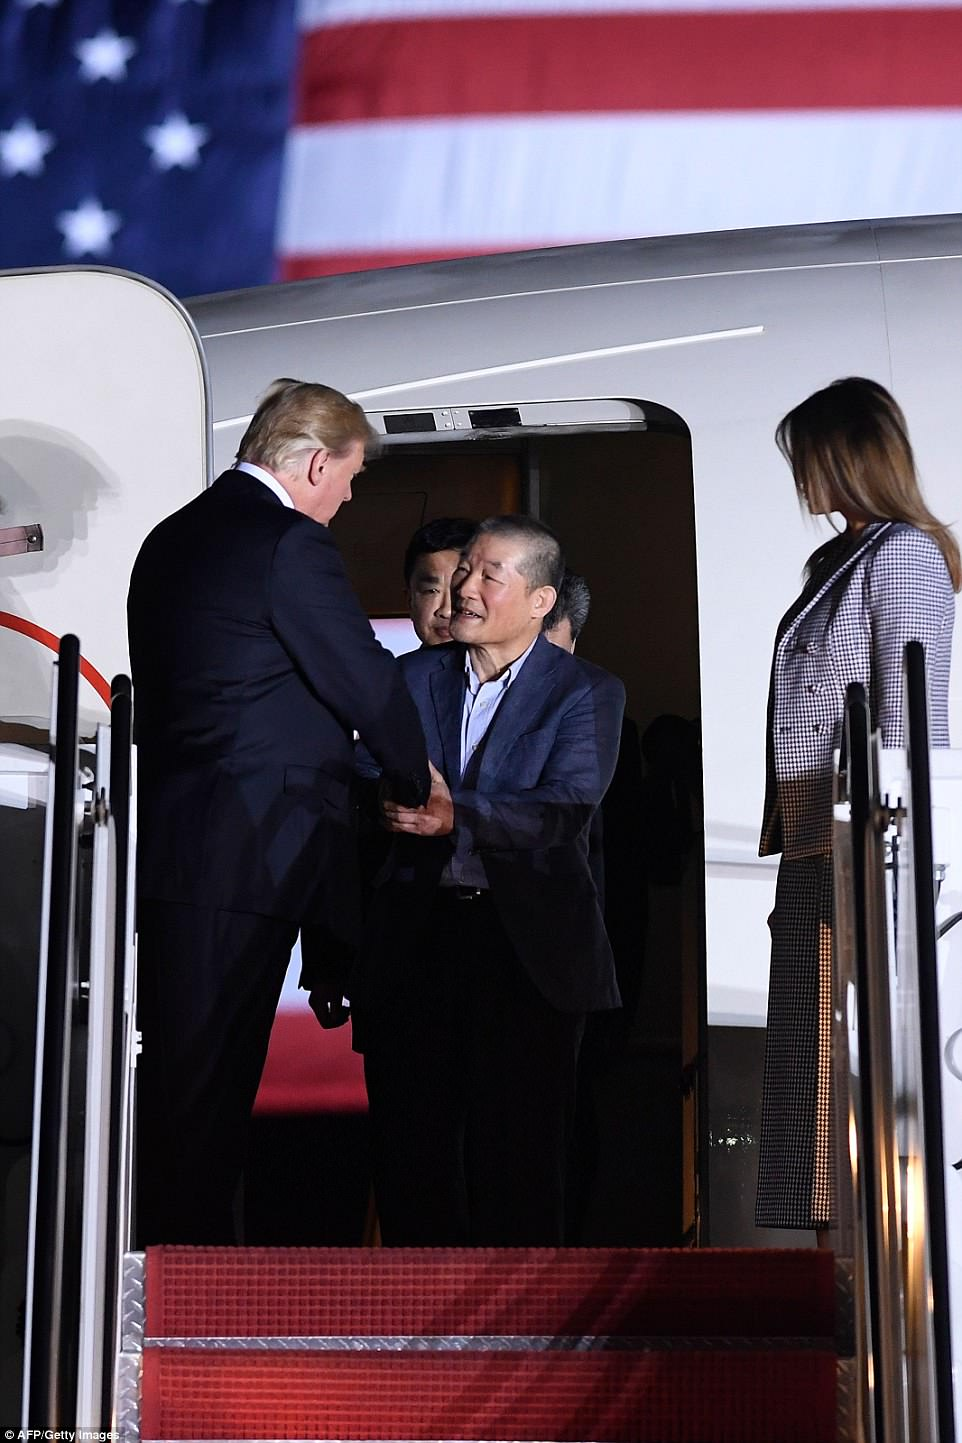 Trump shook hands with former detainee Kim Dong-chul (center) upon his return with Kim Hak-song and Tony Kim (both behind) in extraordinary scenes